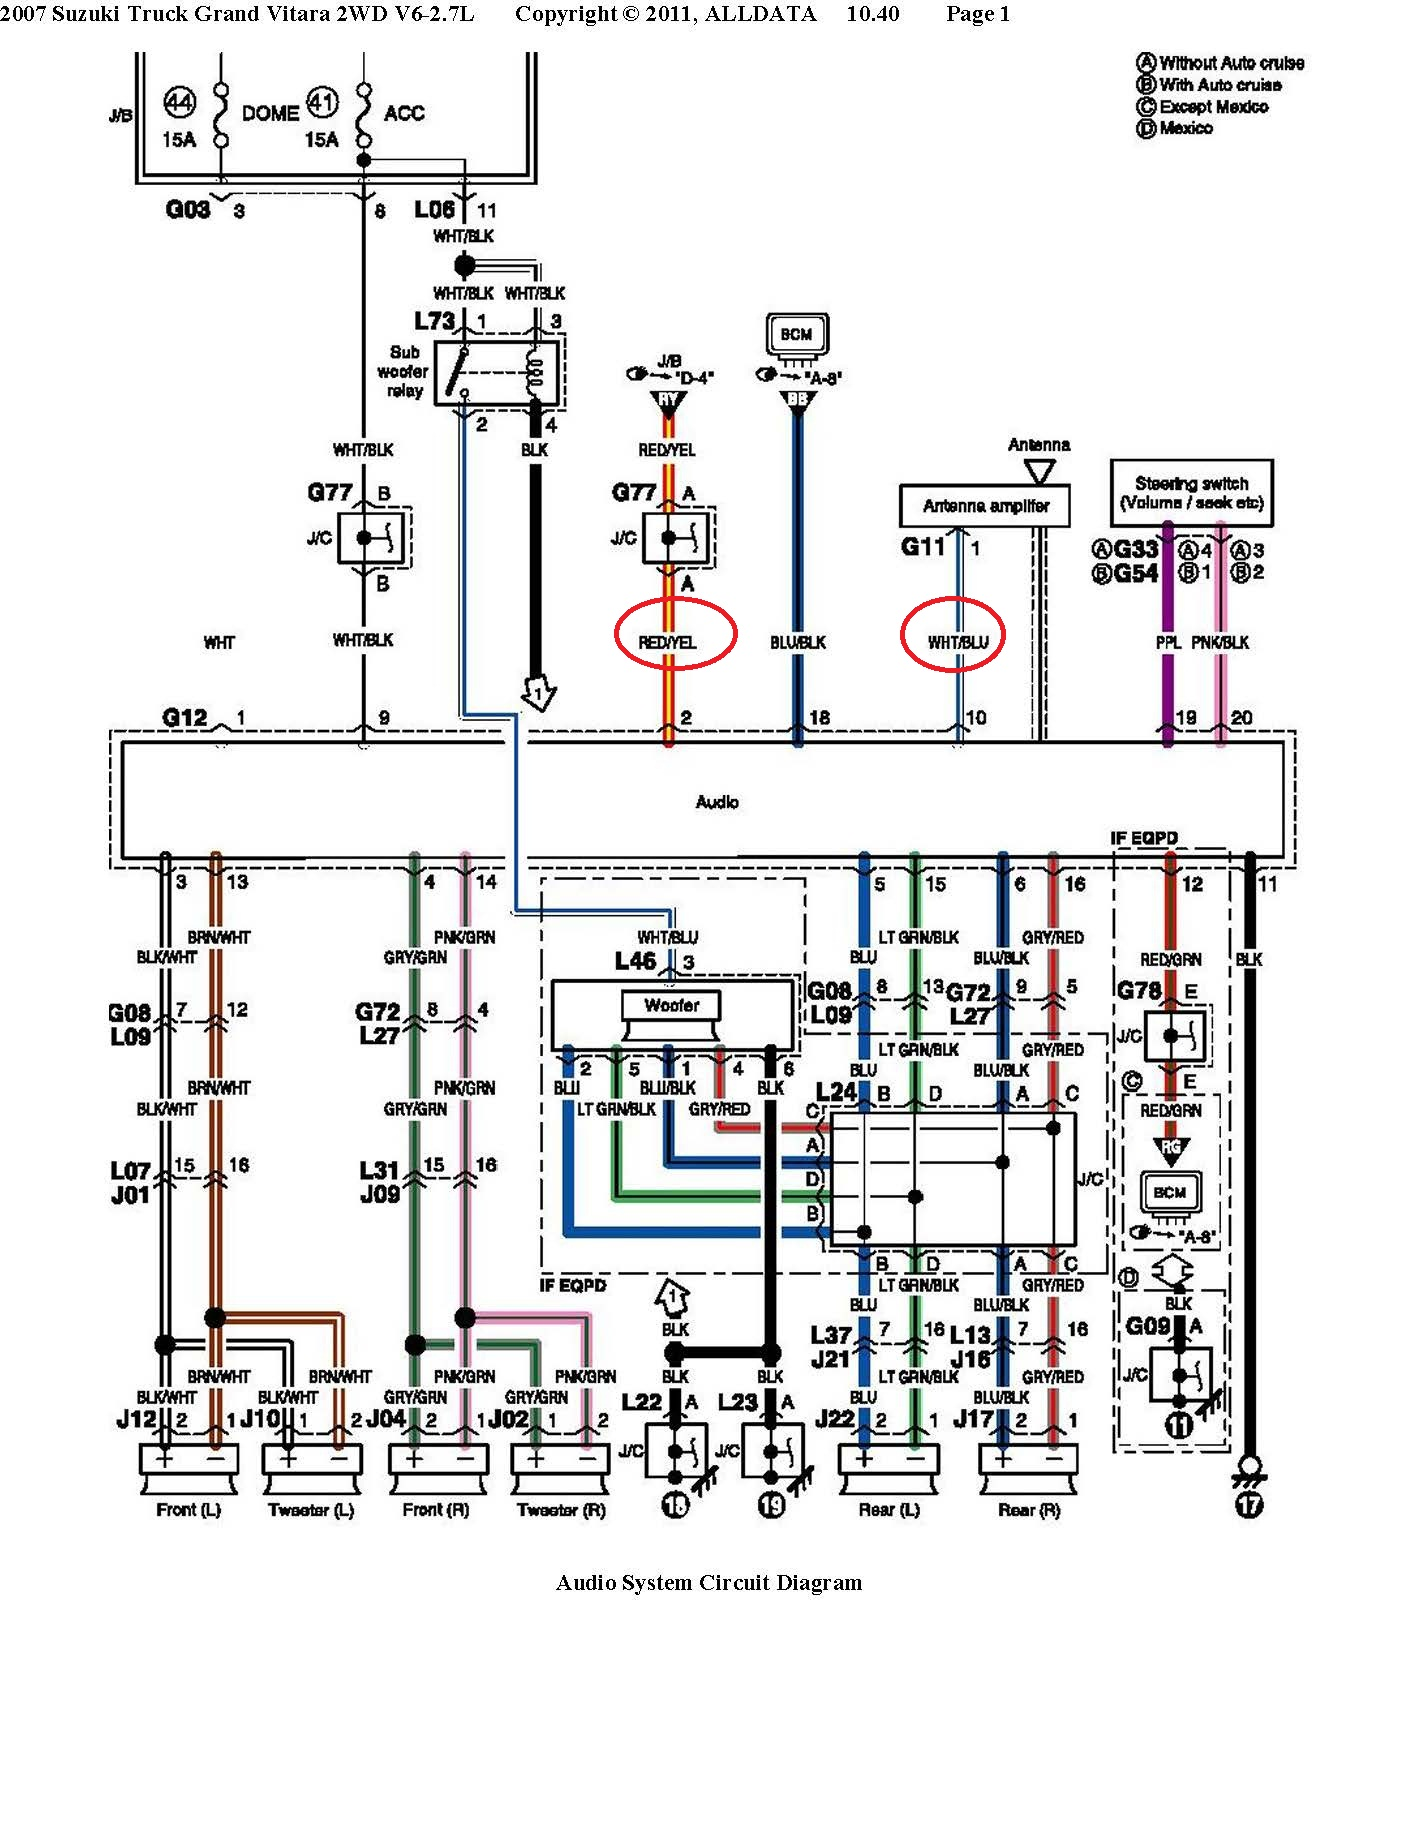 Suzuki Car Radio Stereo Audio Wiring Diagram Autoradio Connector Electric Colours Wire Installation Schematic Schema Esquema De Conexiones Stecker Konektor Connecteur Cable